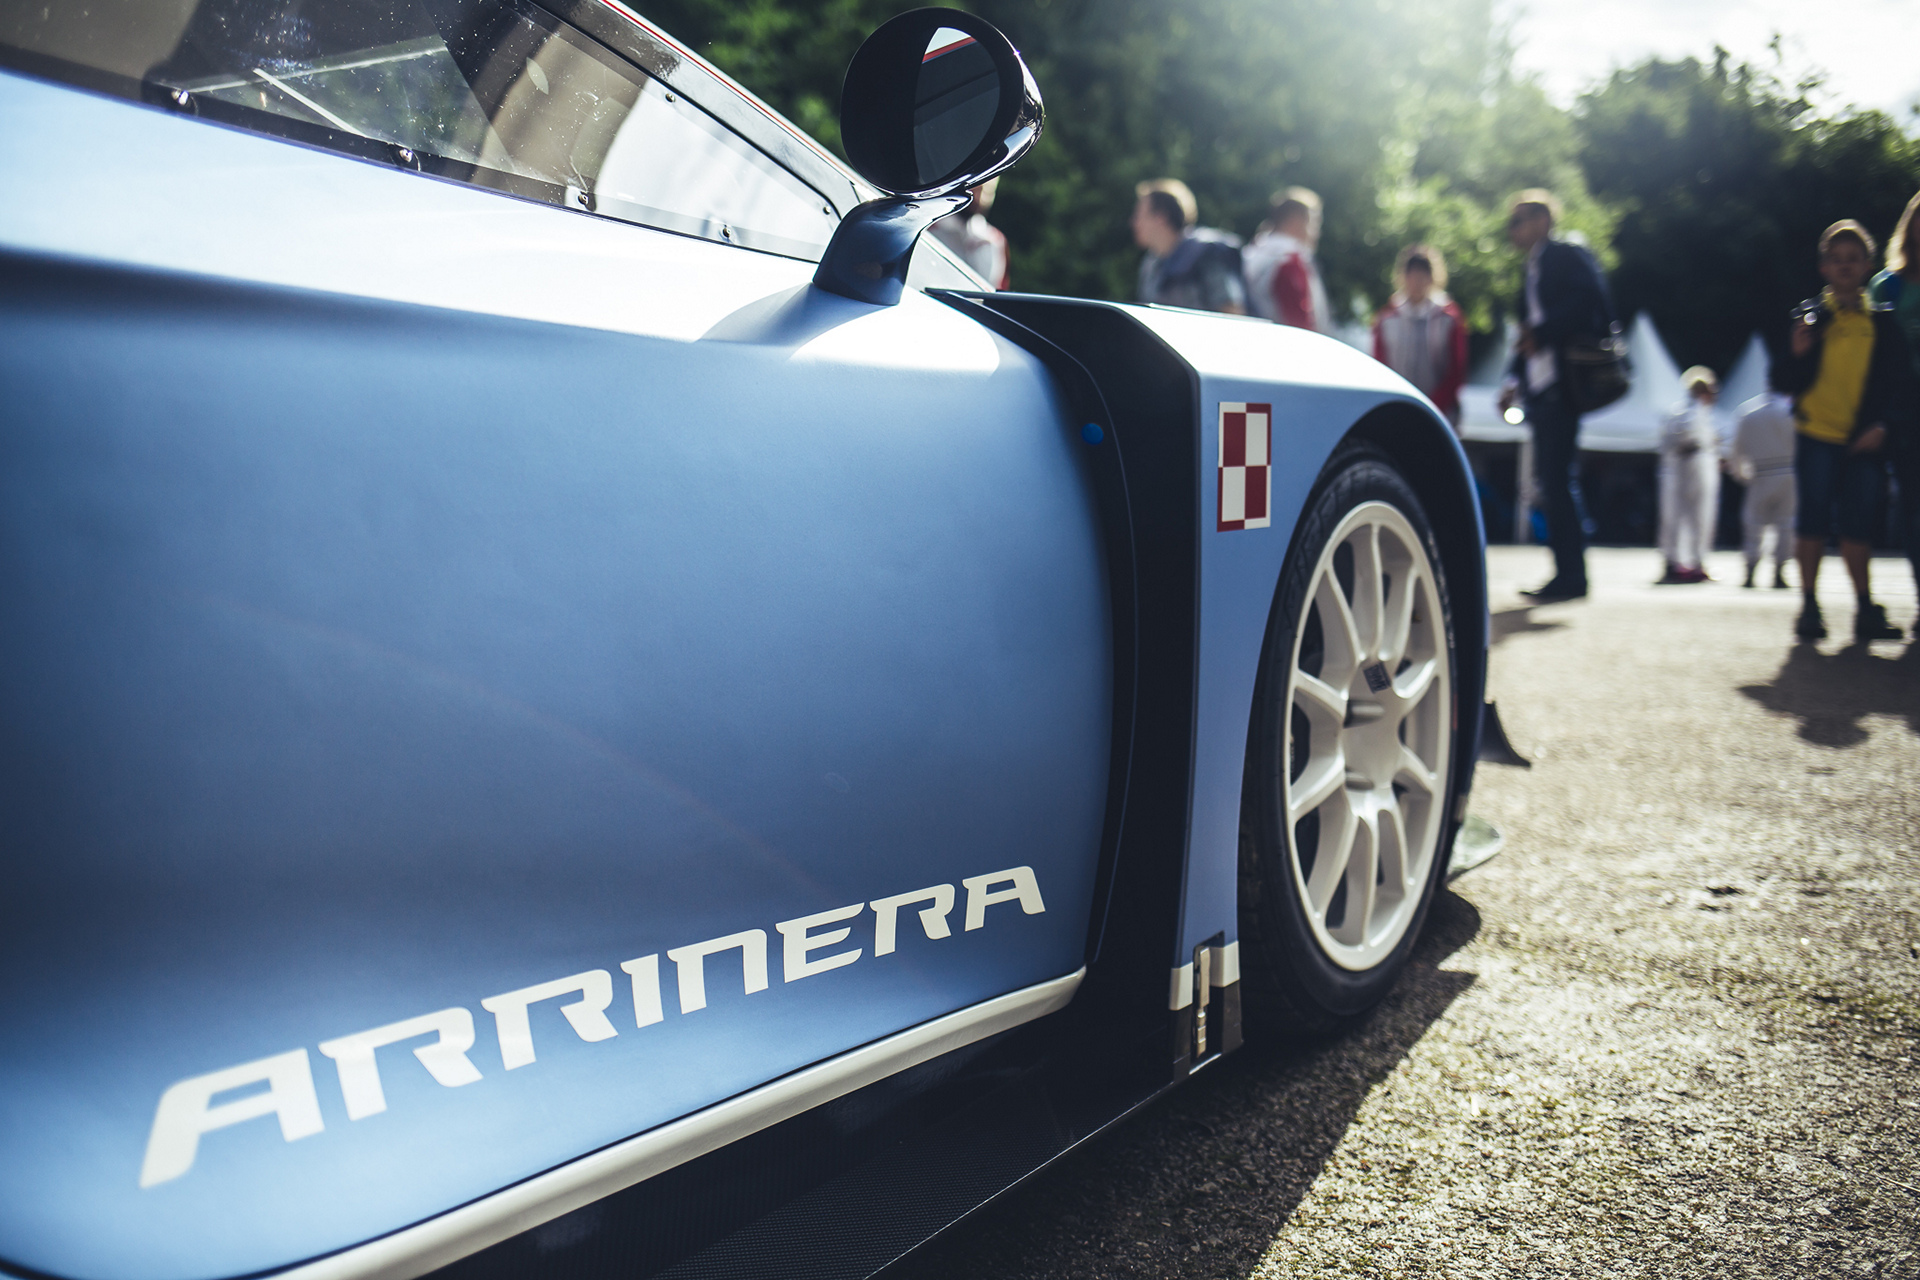 Arrinera at Goodwood © Arrinera Racing Ltd.